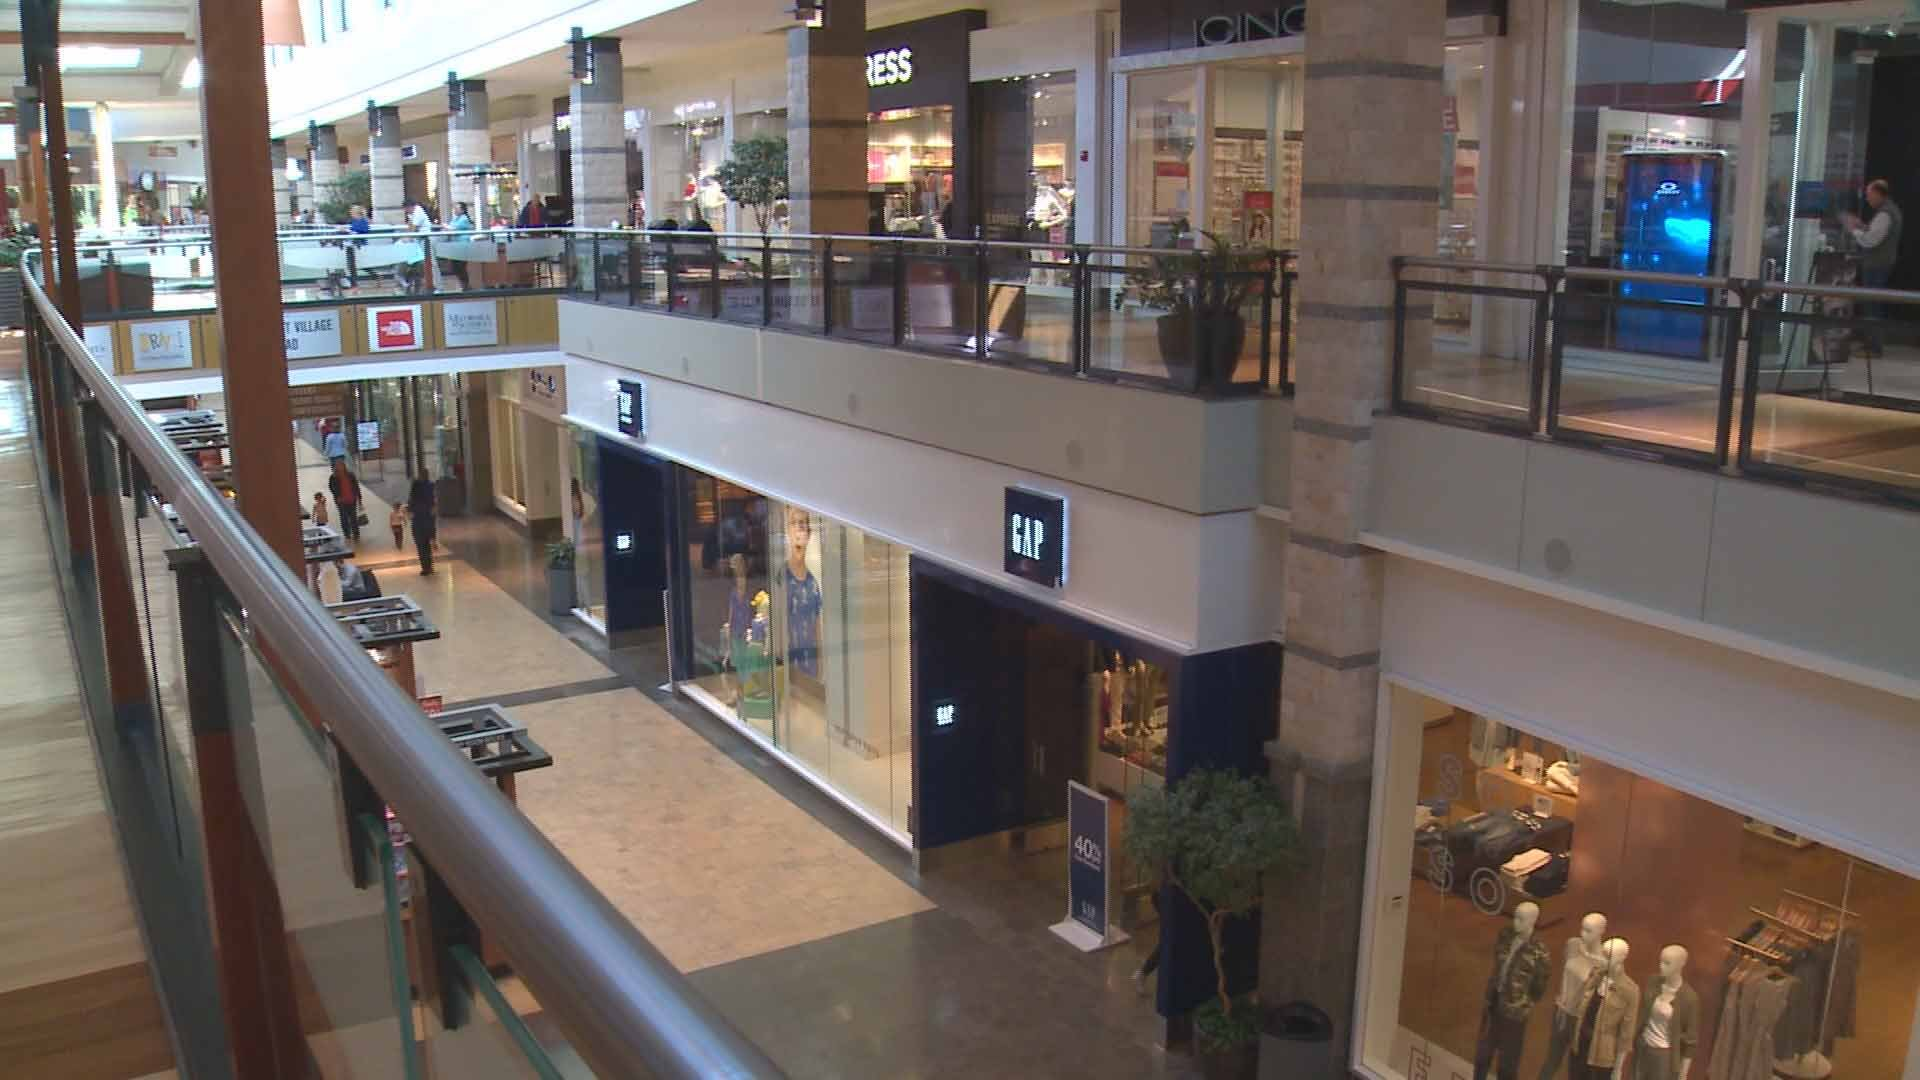 West County Mall. Credit: KMOV